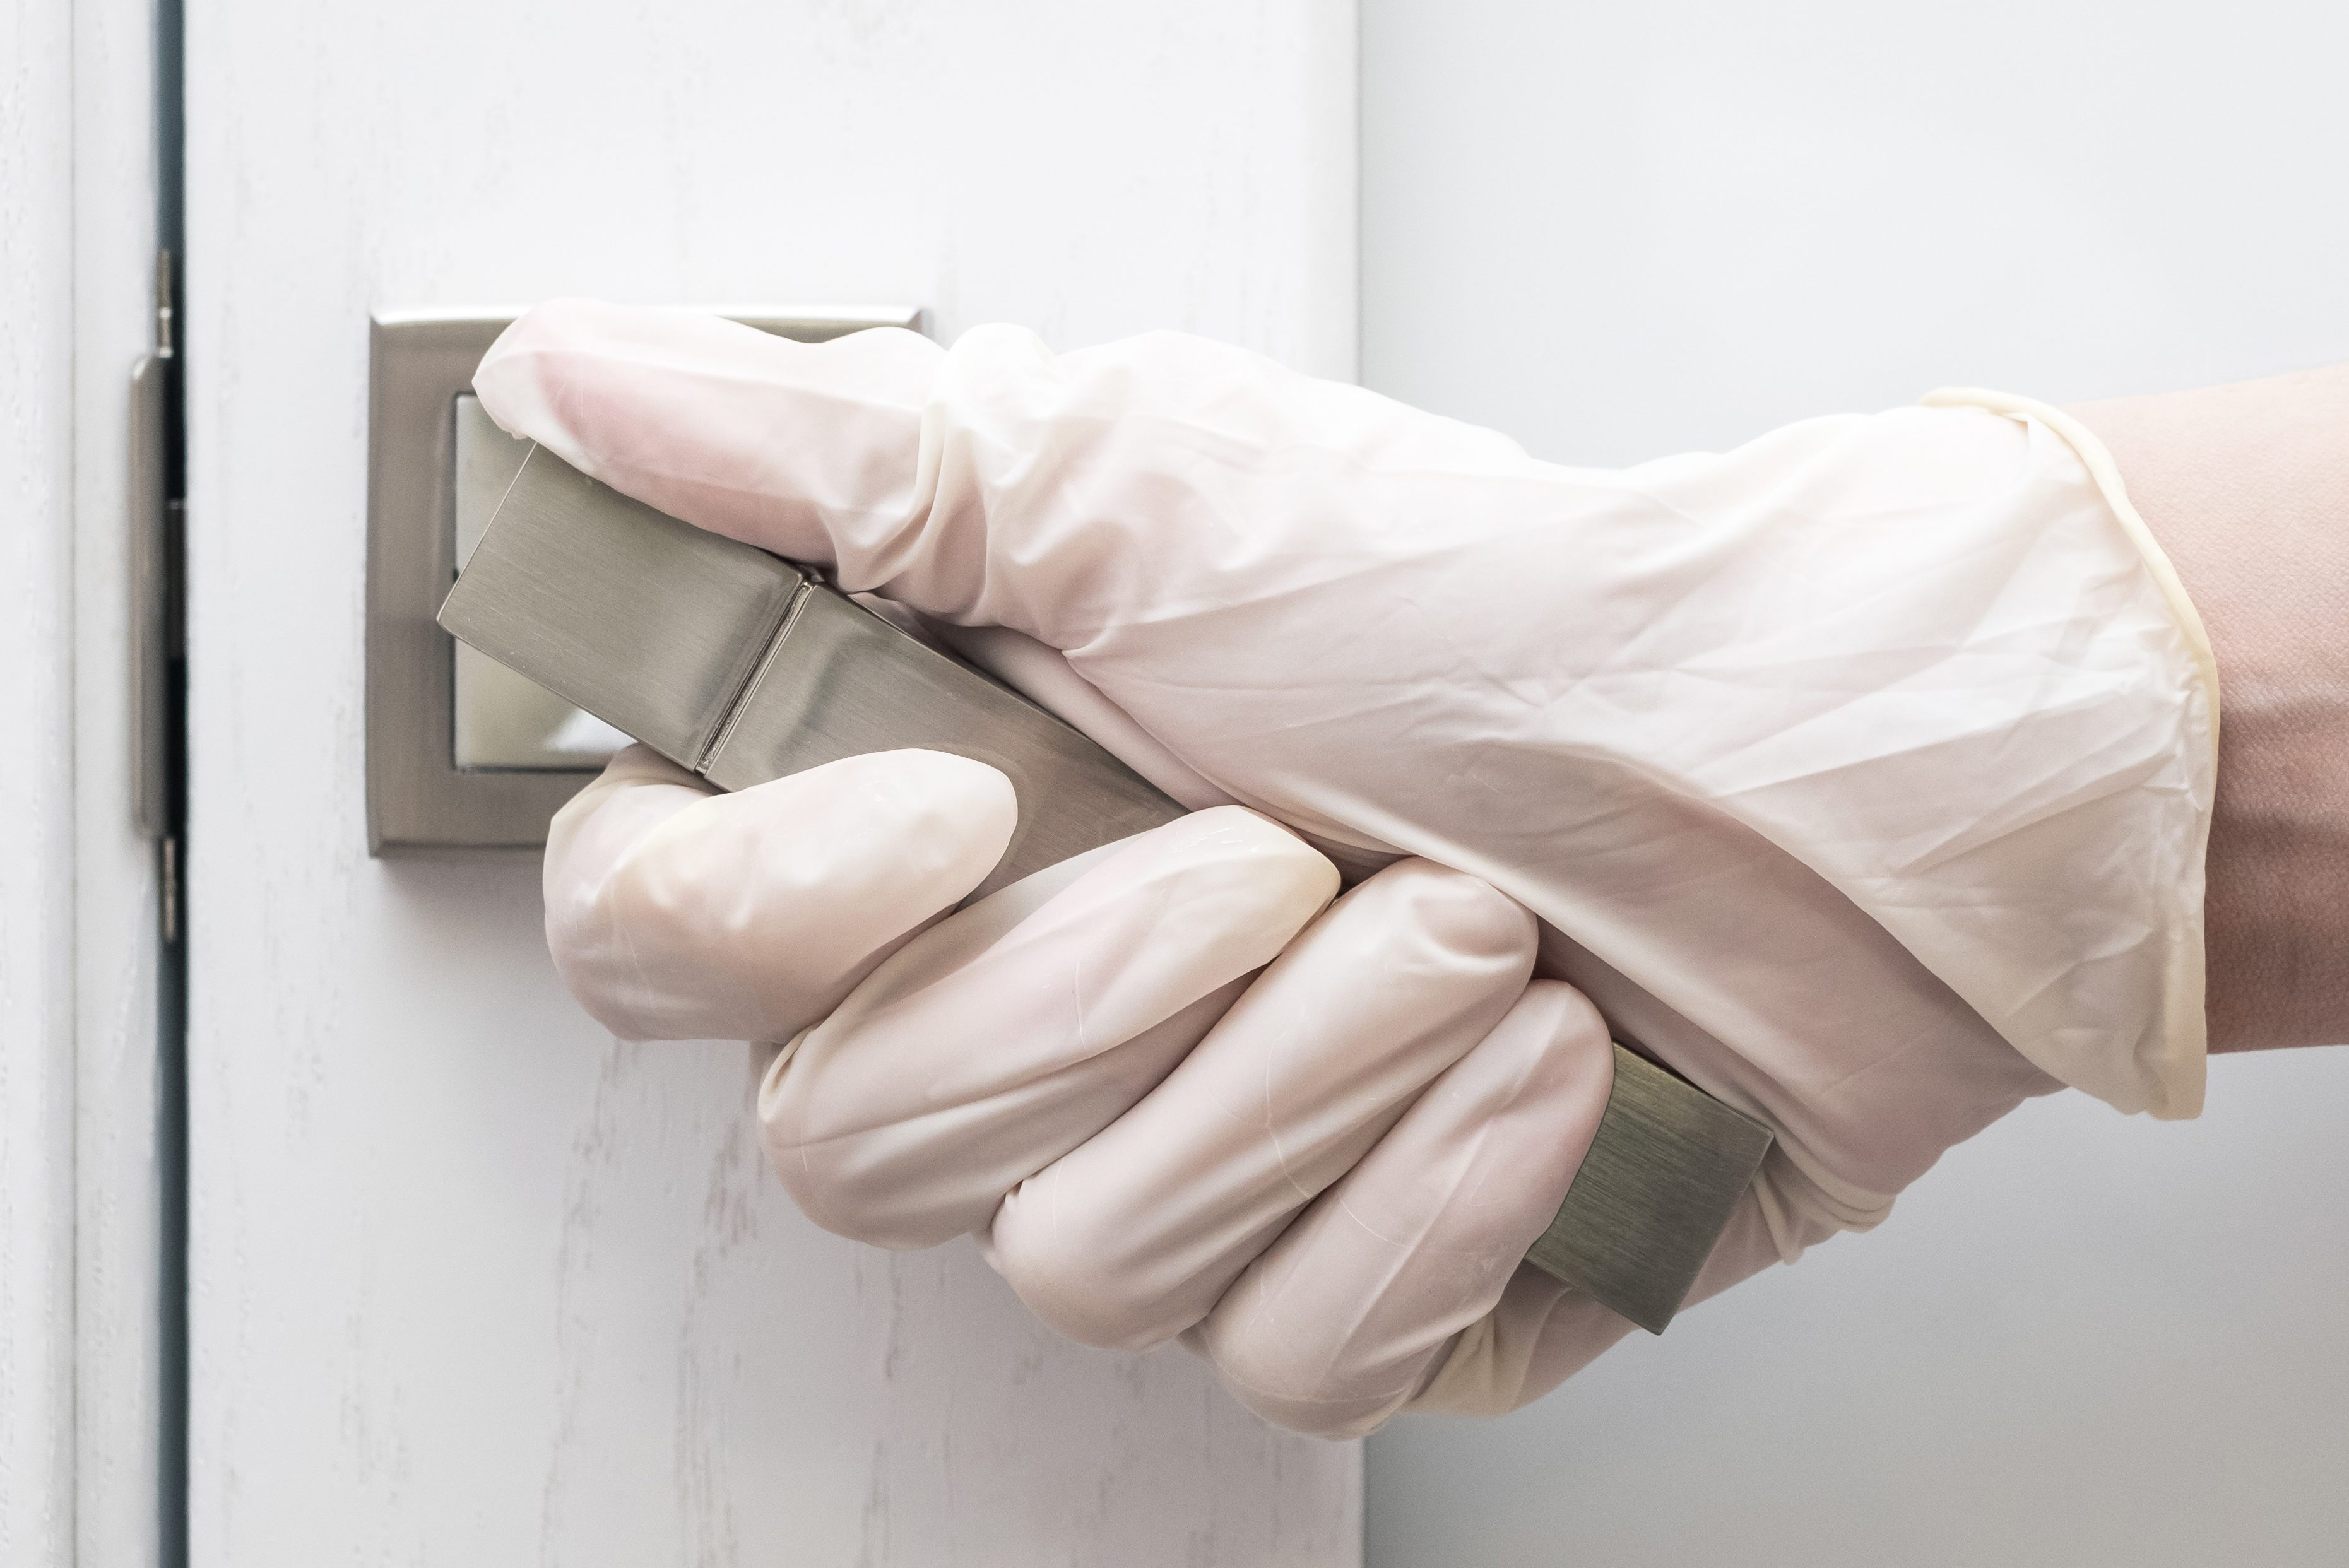 Hand in a rubber glove holding the door handle of the front door, close-up. Concept of protection against coronavirus and flu. Door handle, as a collection of microbes and bacteria, a virus carrier